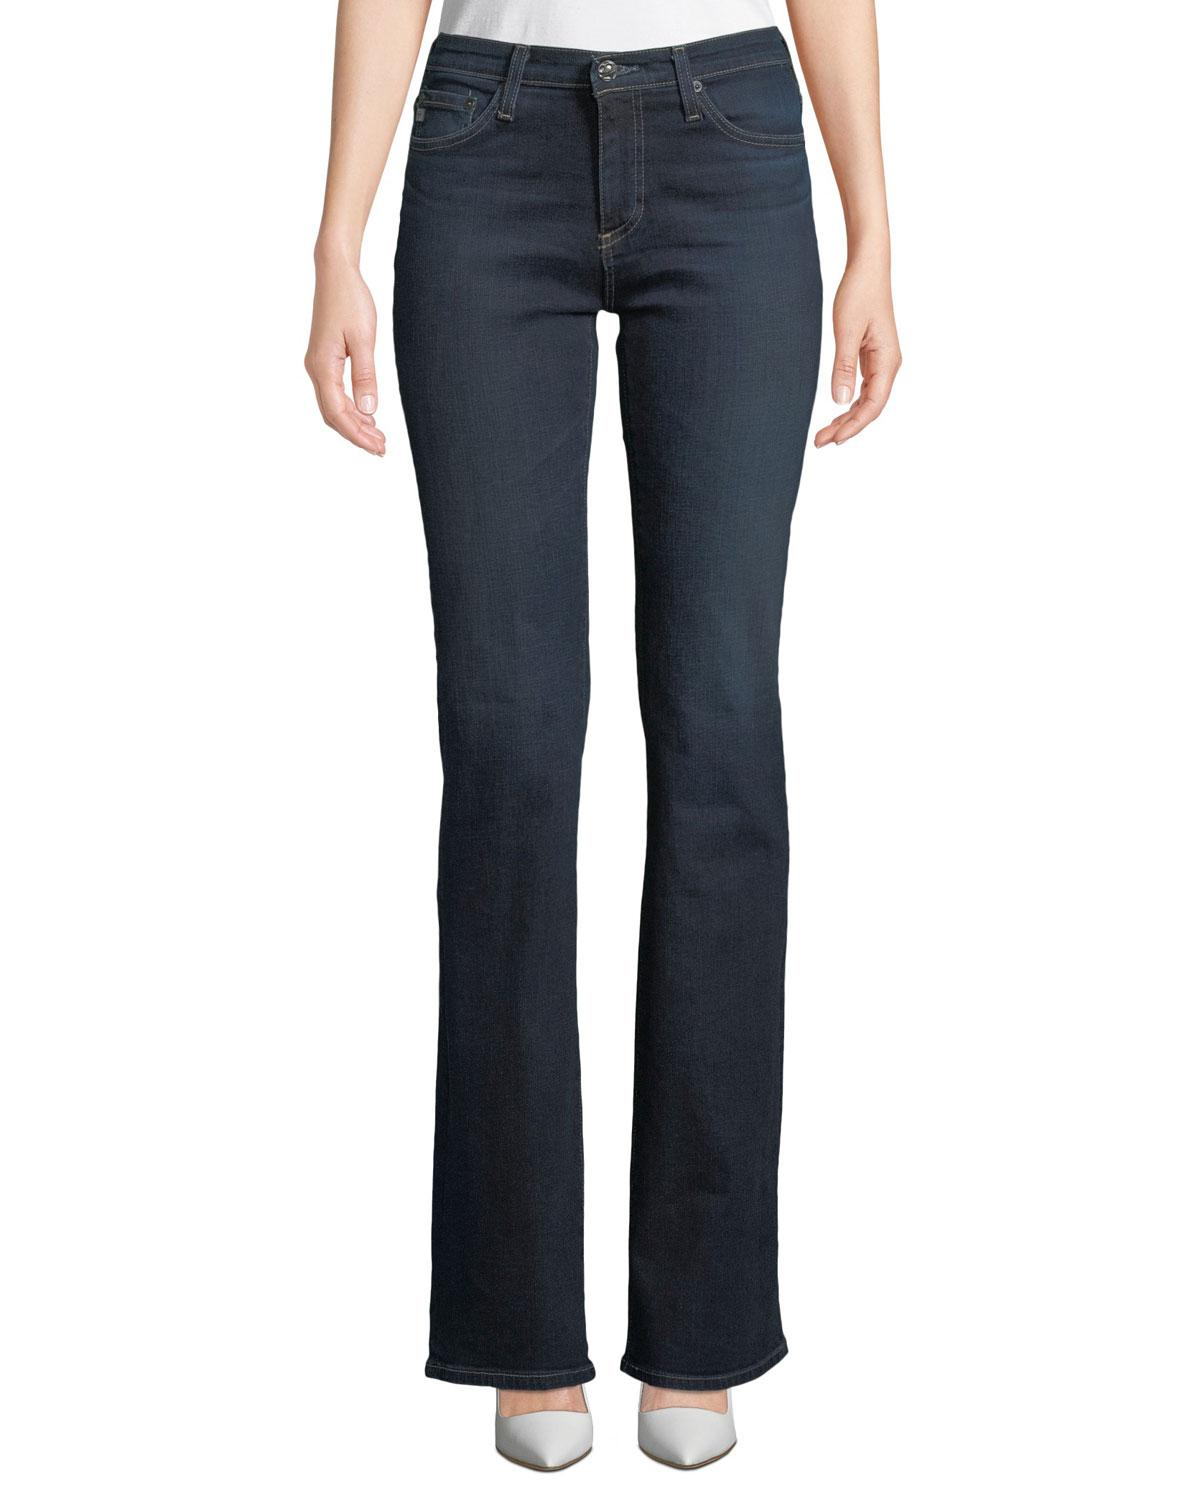 bbb128bf16 Lyst - AG Jeans Angel 13 Years Mid-rise Boot-cut Jeans in Blue